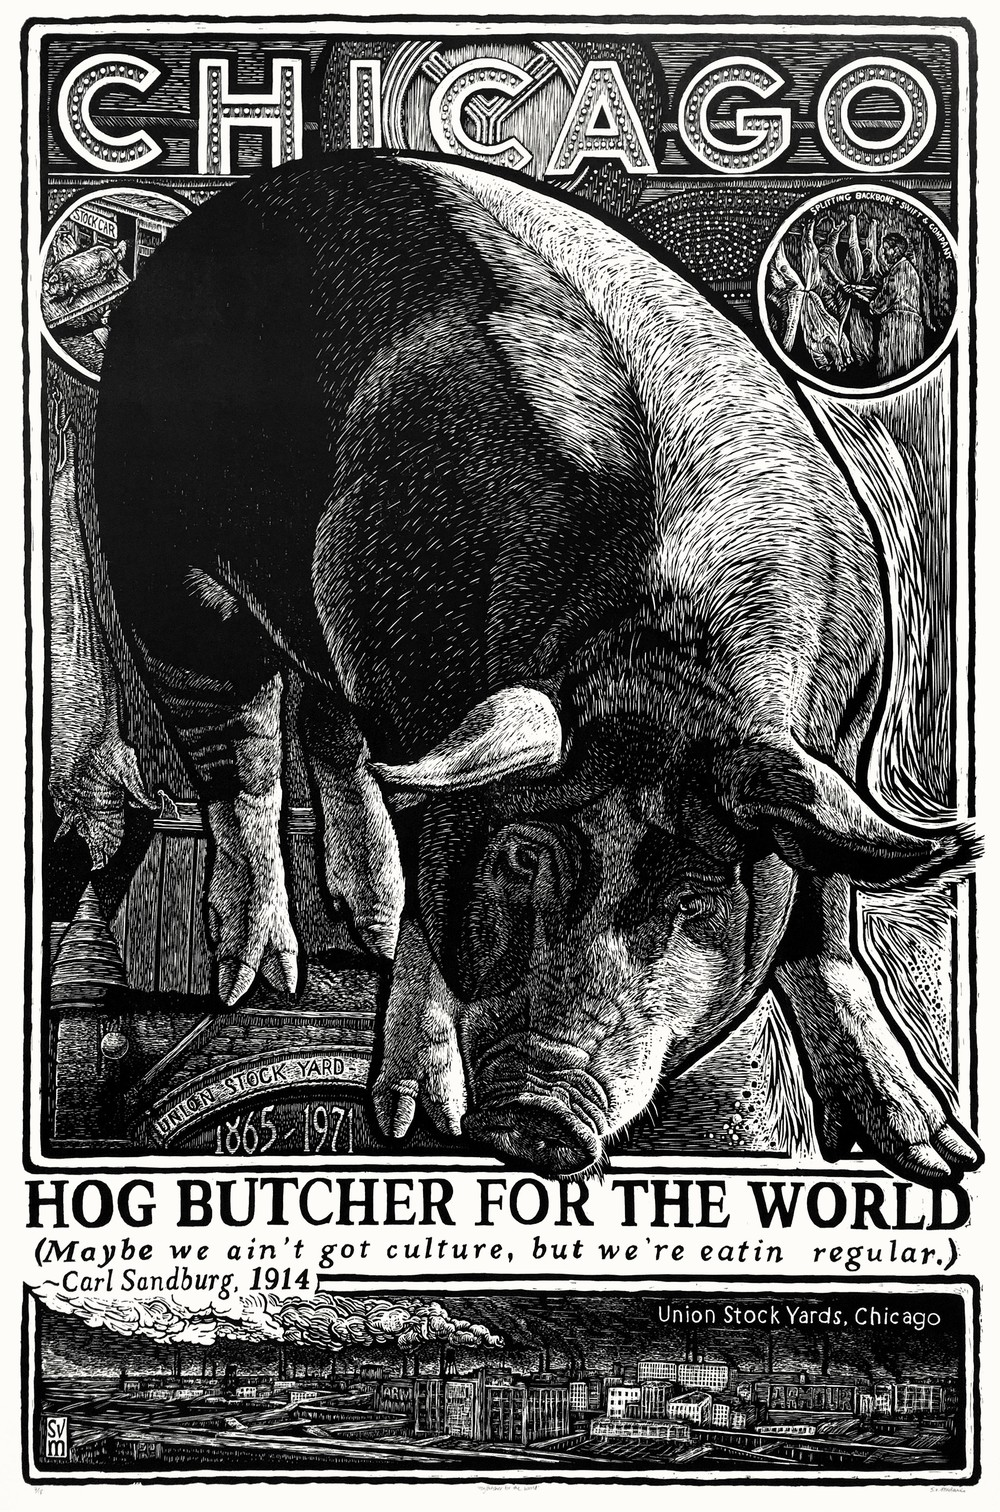 Hog Butcher for the World woodblock print 64 x 44 $2,000